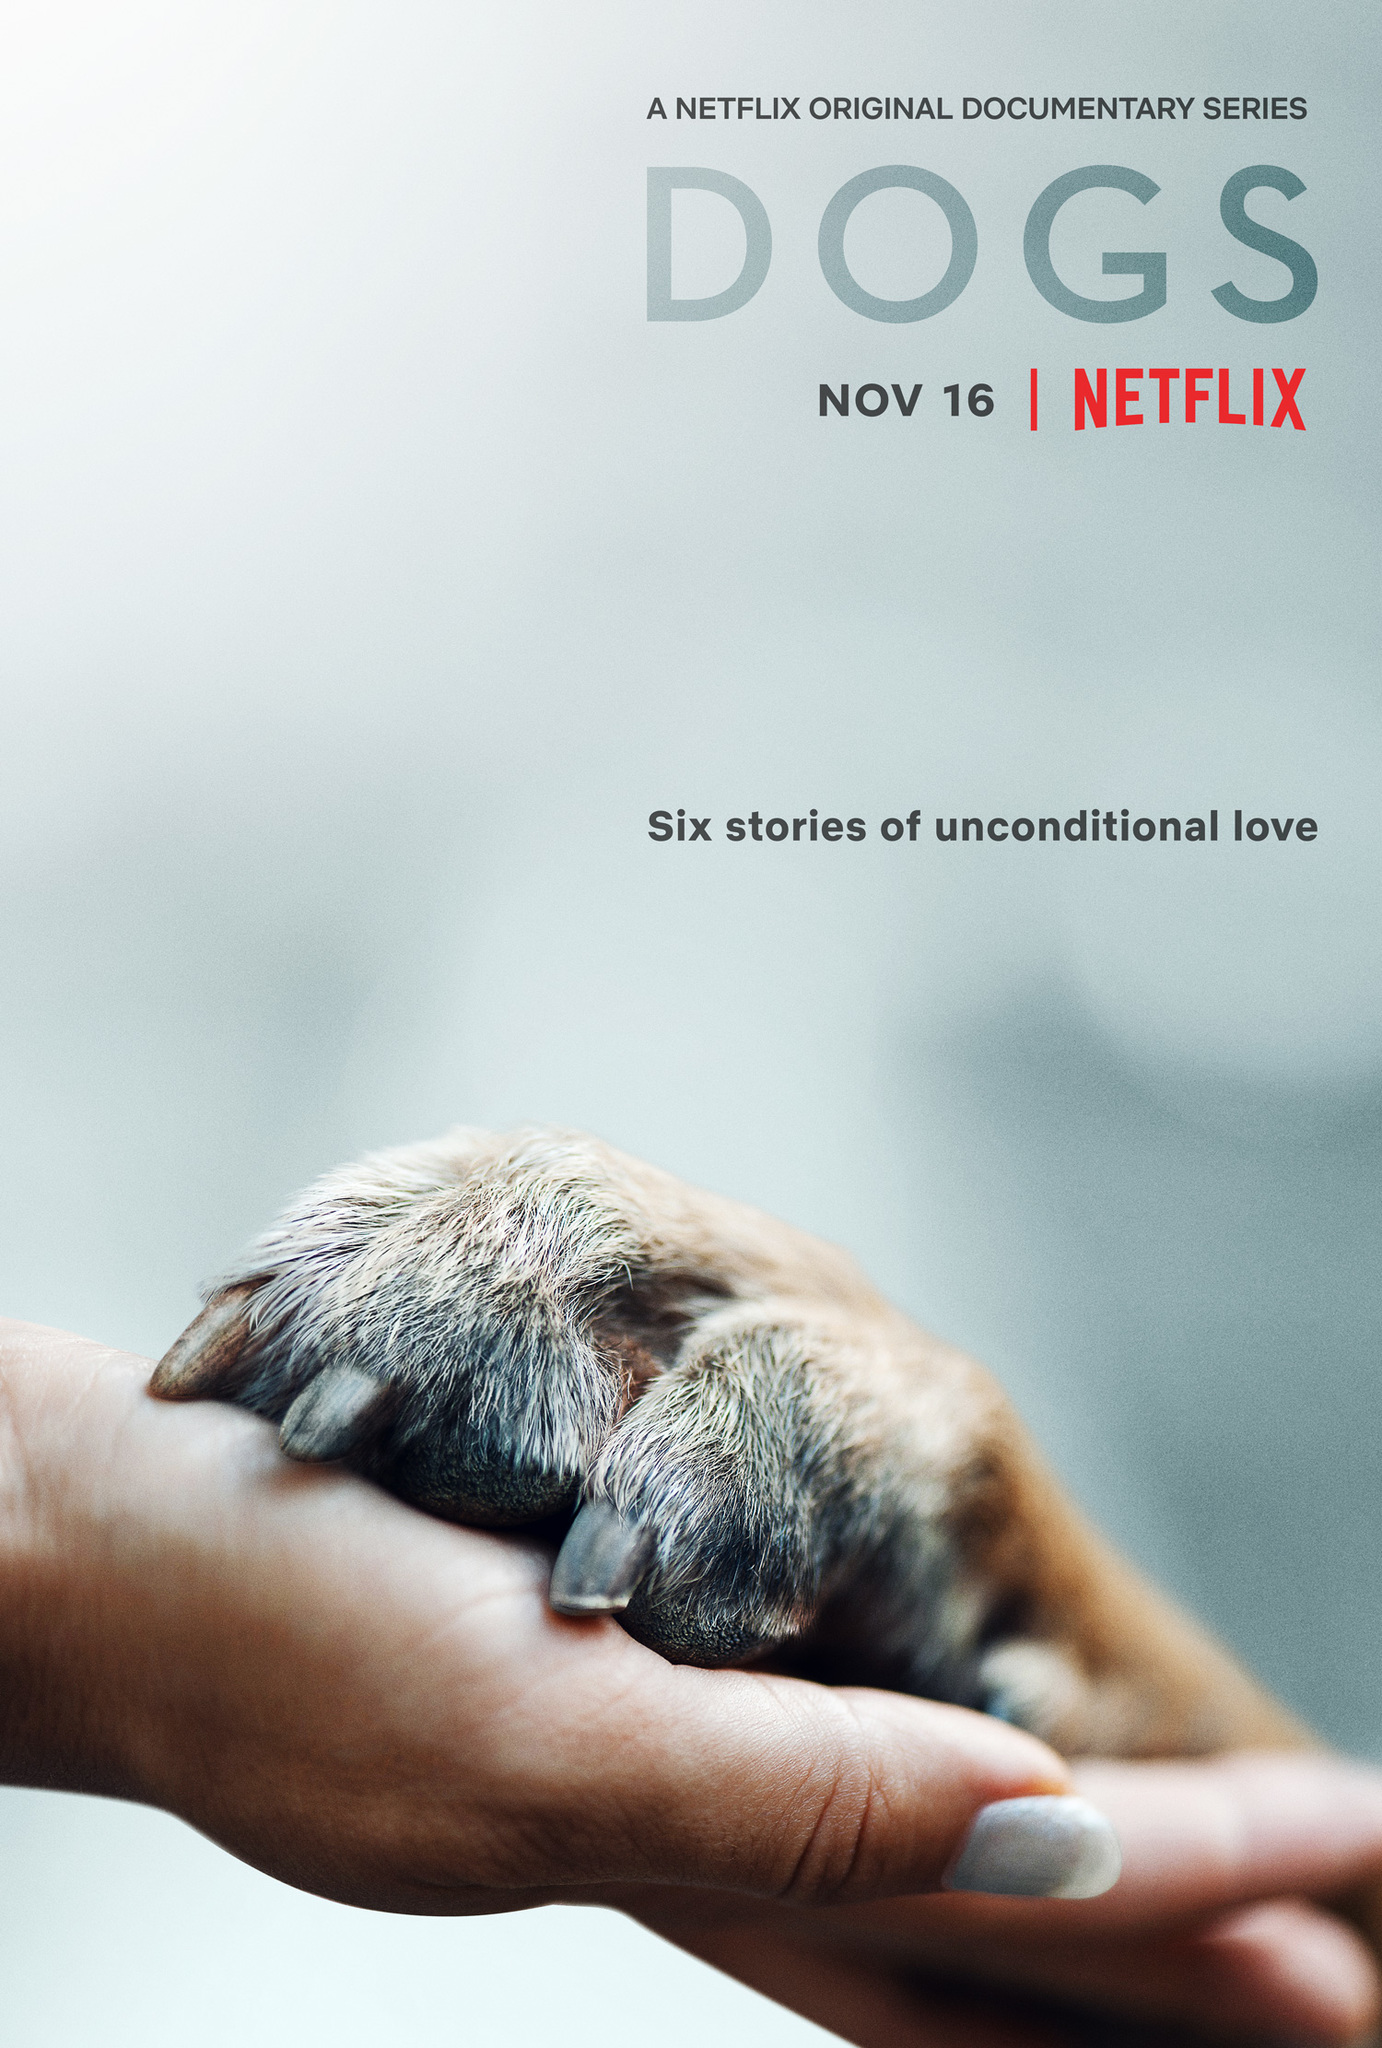 Dogs S02 (2021) English Documentary TV Series All Episodes